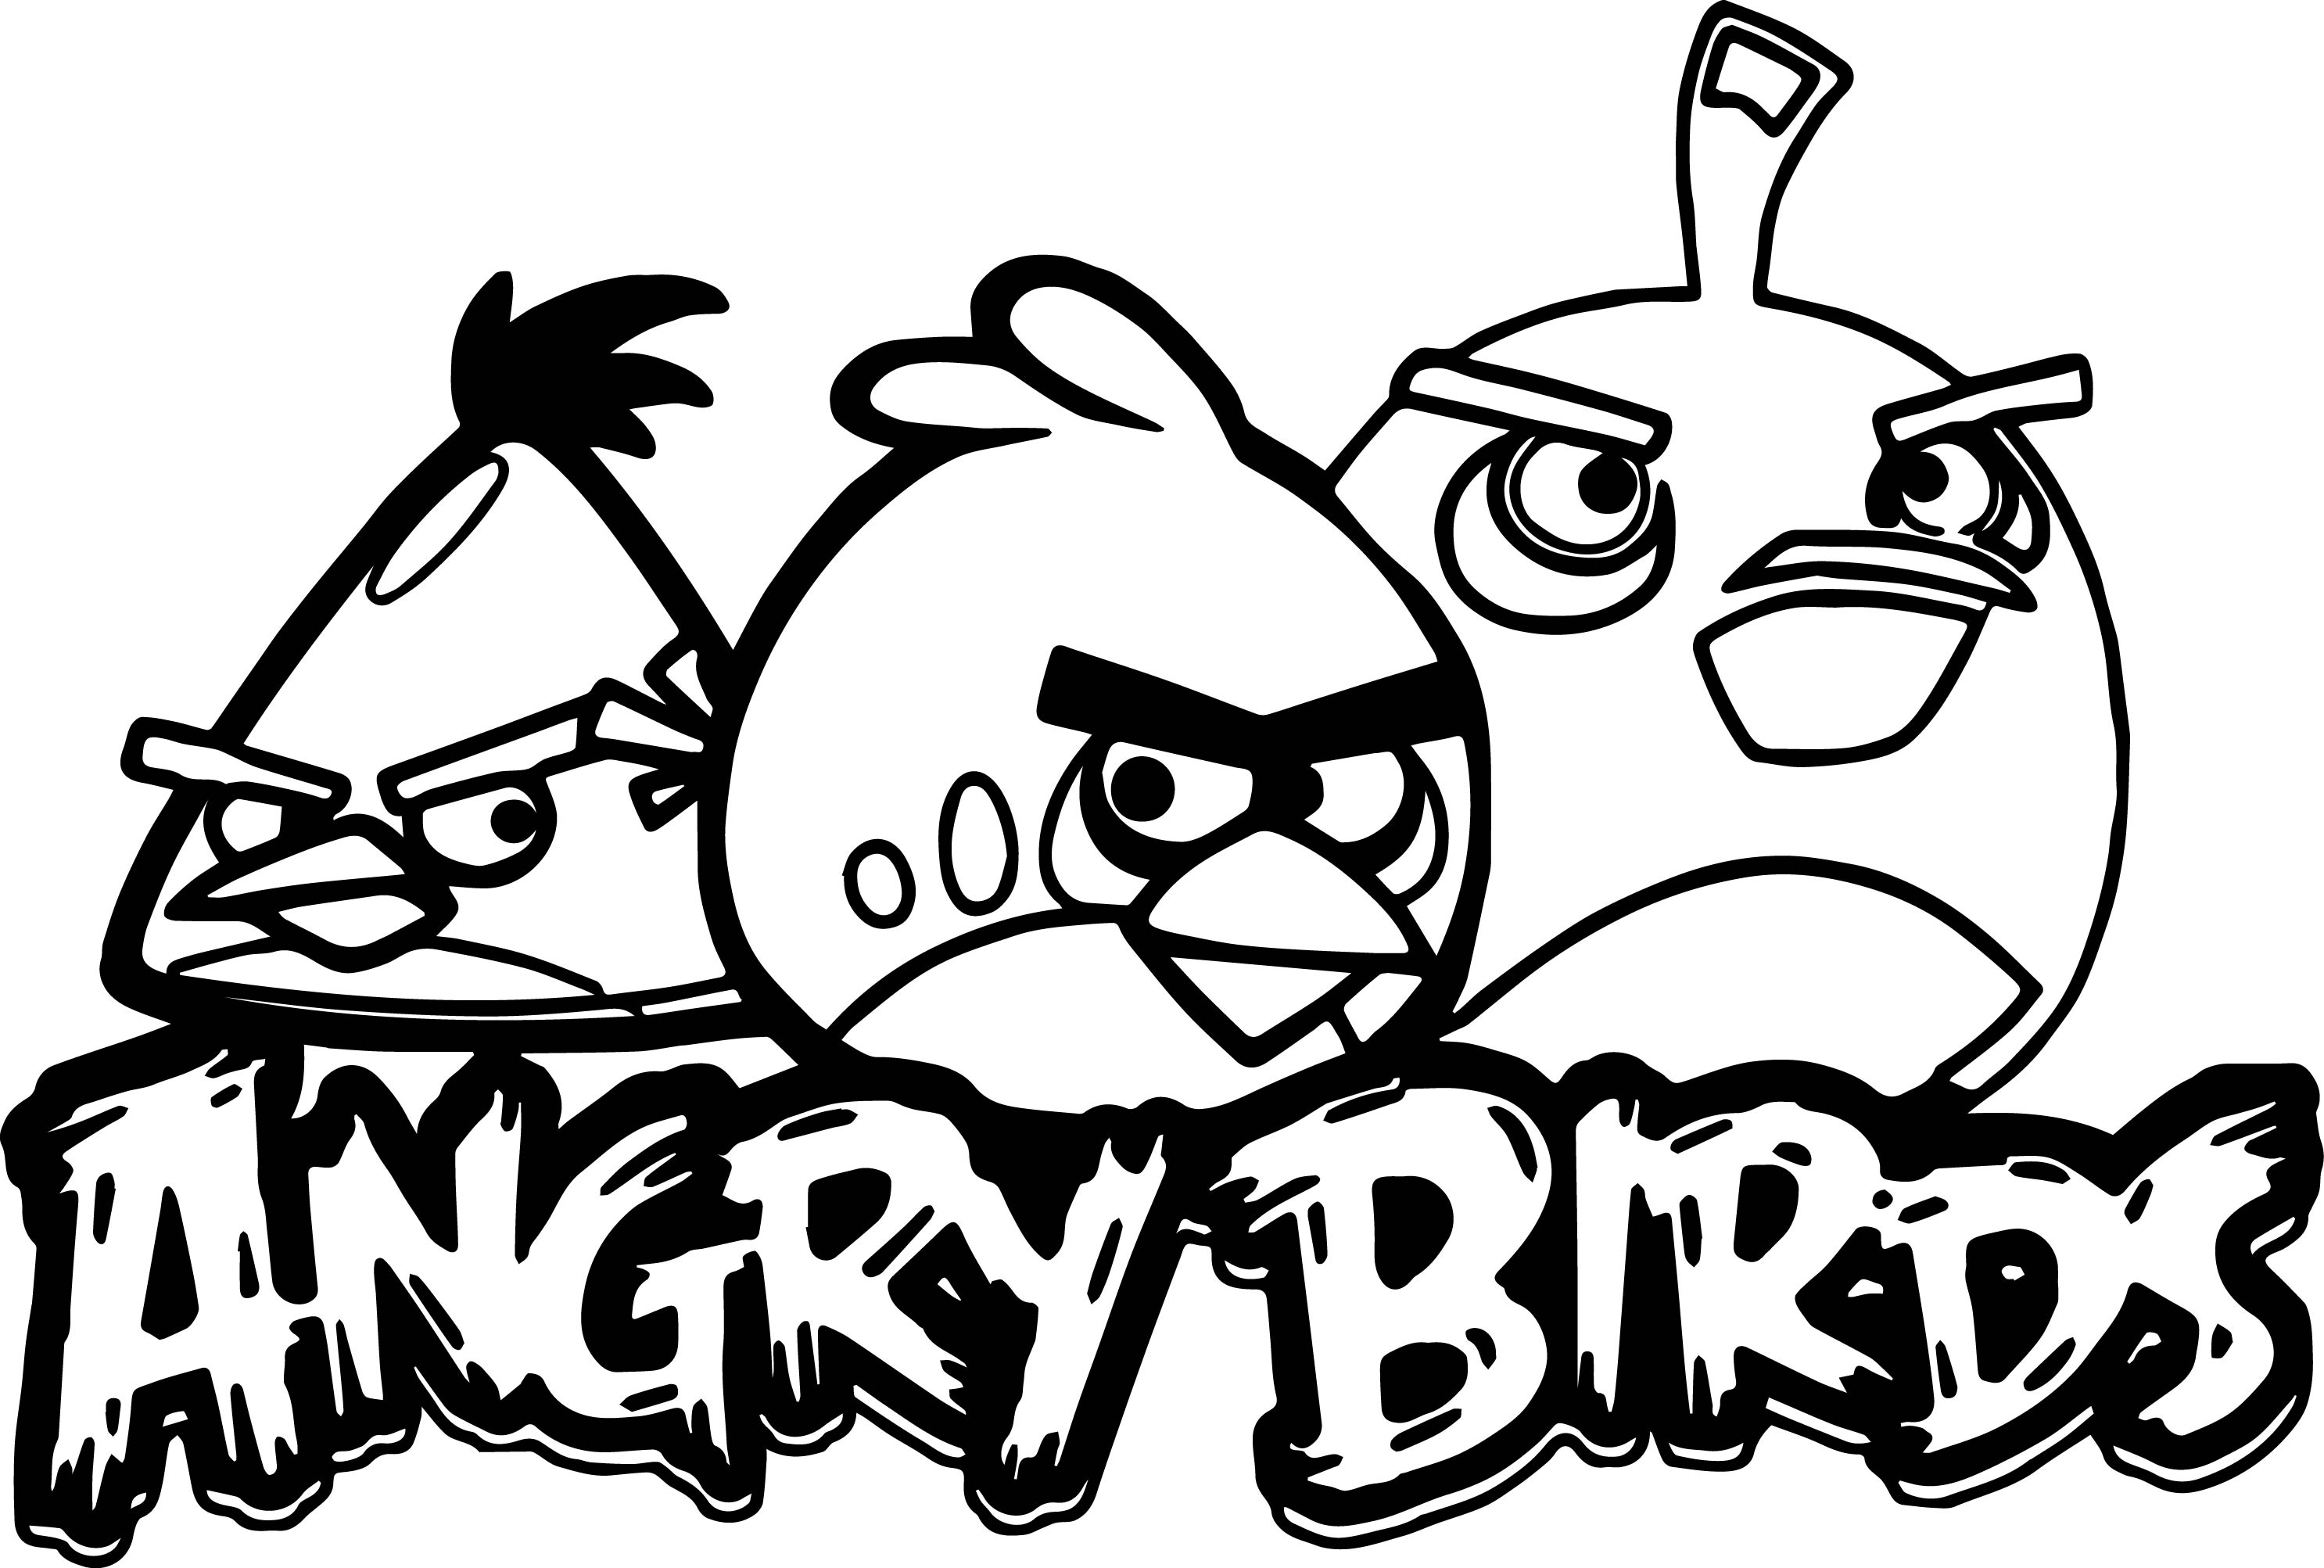 2972x2005 Angry Birds Coloring Pages For Kids Printable Preschool Humorous